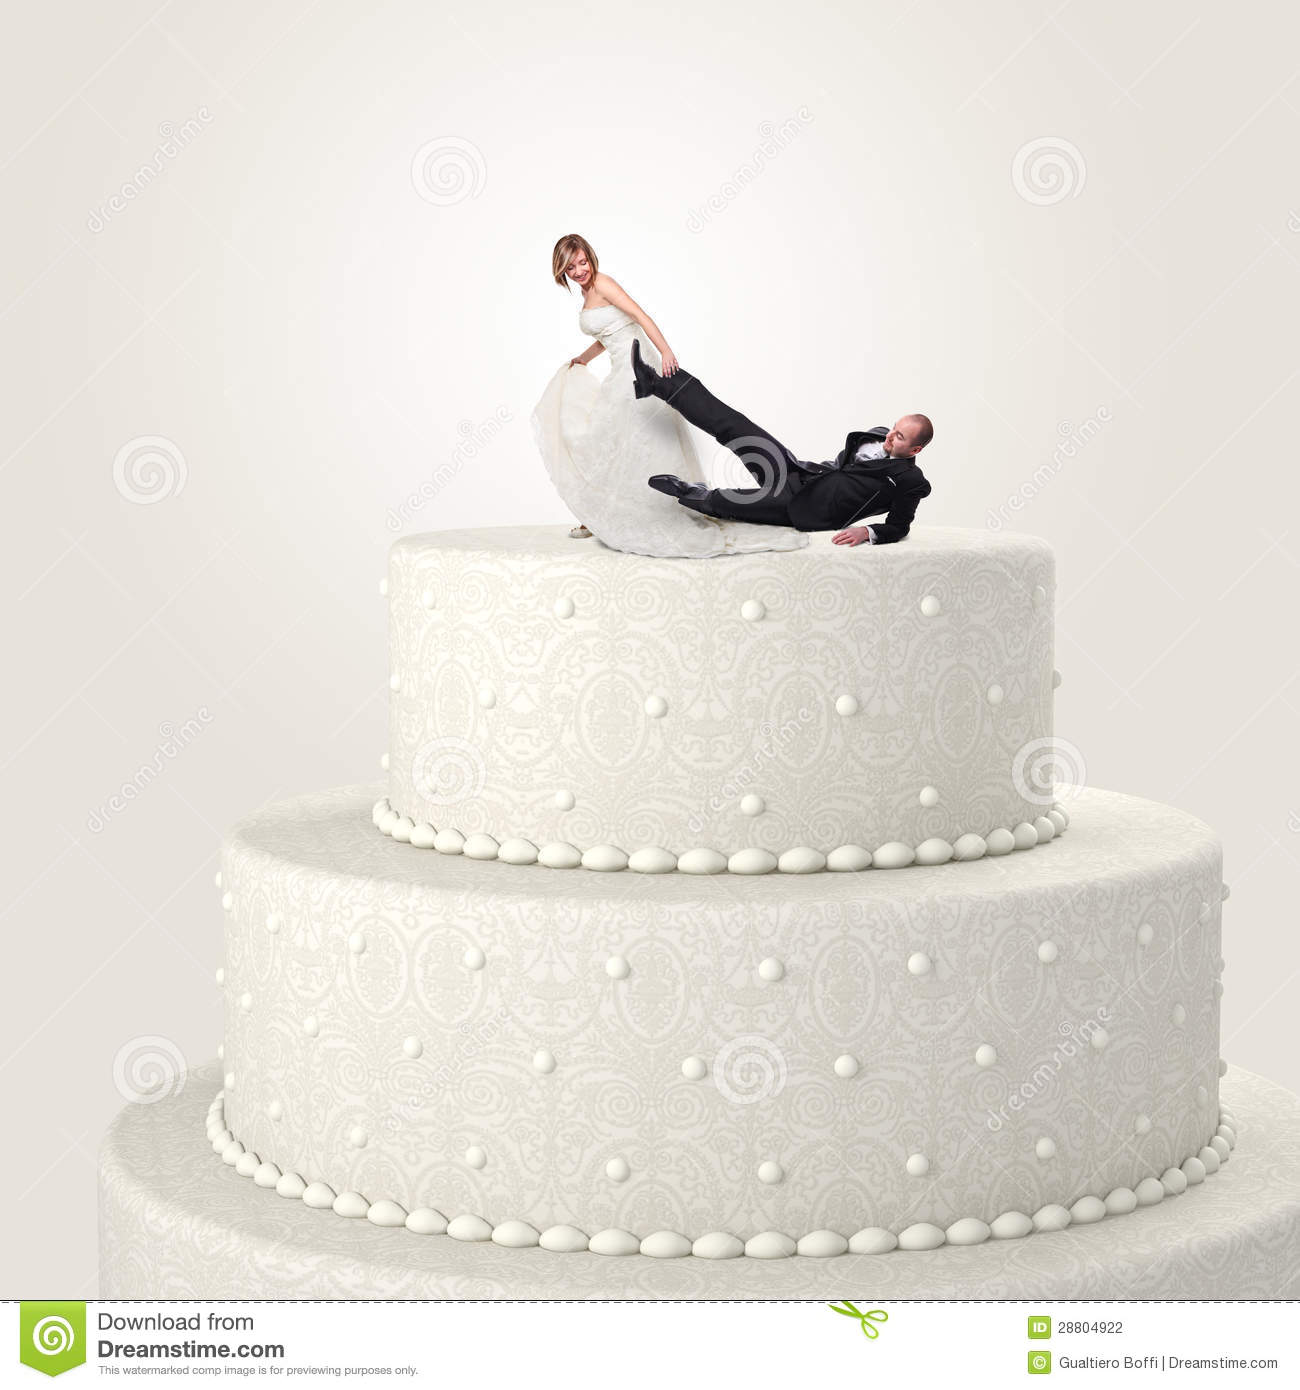 Funny cake topper stock photo. Image of stand, brown - 28804922